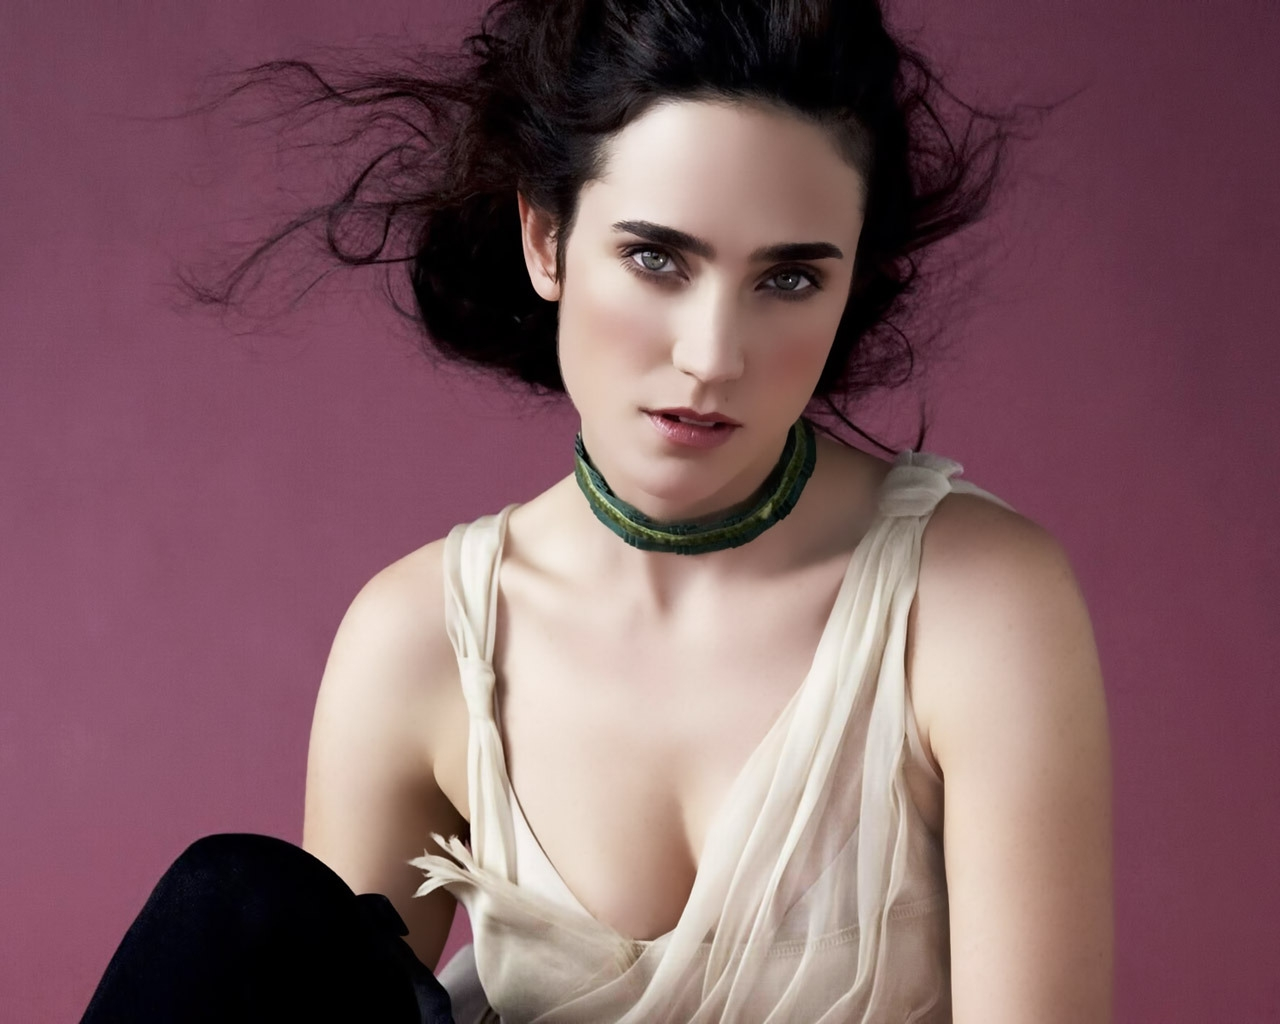 Jennifer Connelly Thinking for 1280 x 1024 resolution